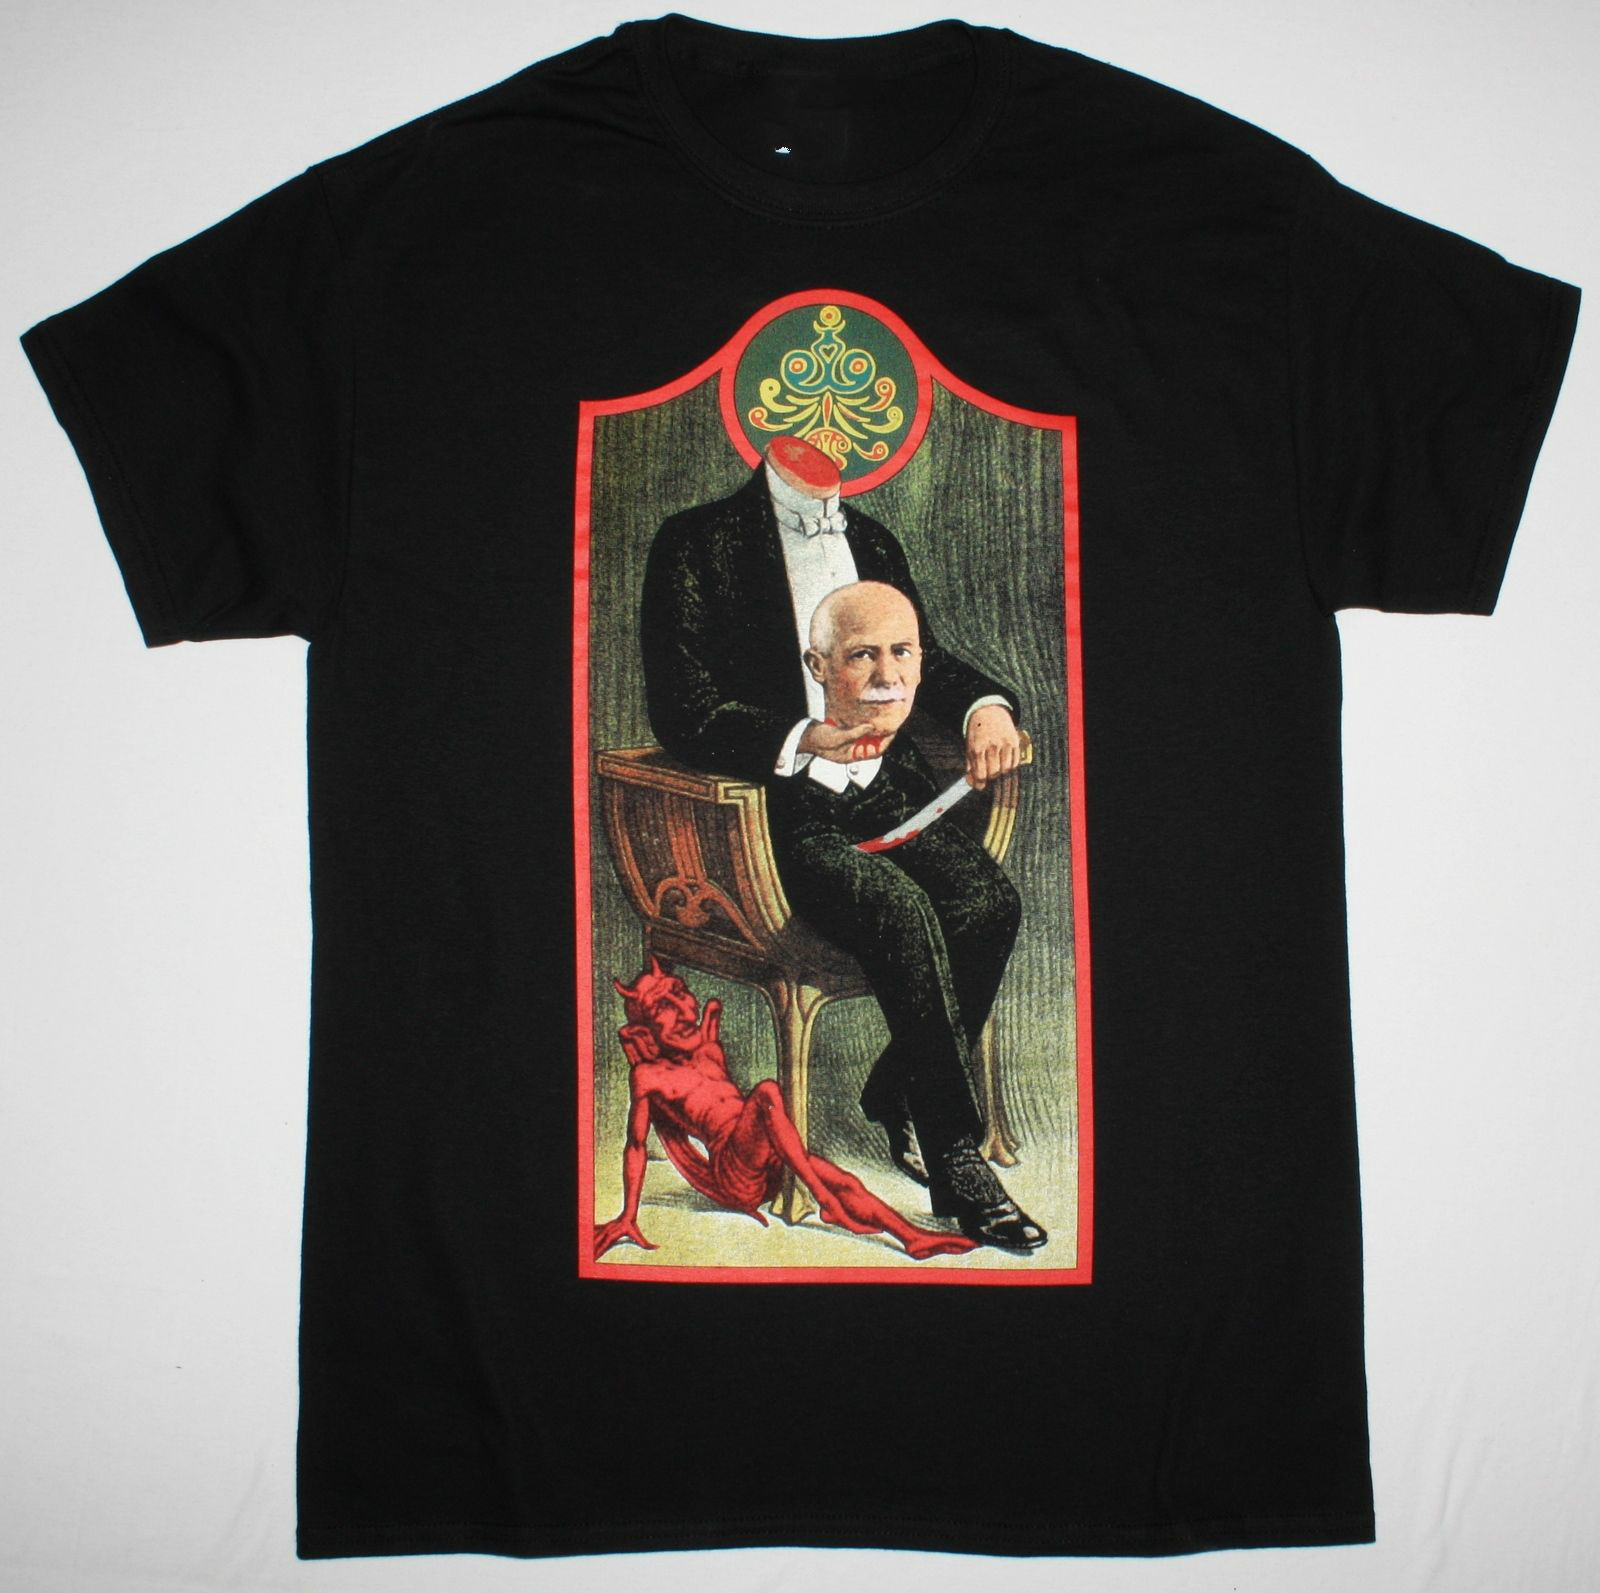 MR BUNGLE R.I.P. FAITH NO MORE FANTOMAS MIKE PATTON TOMAHAWK NEW BLACK T-SHIRT Short Sleeves Cotton T-Shirt Fashion